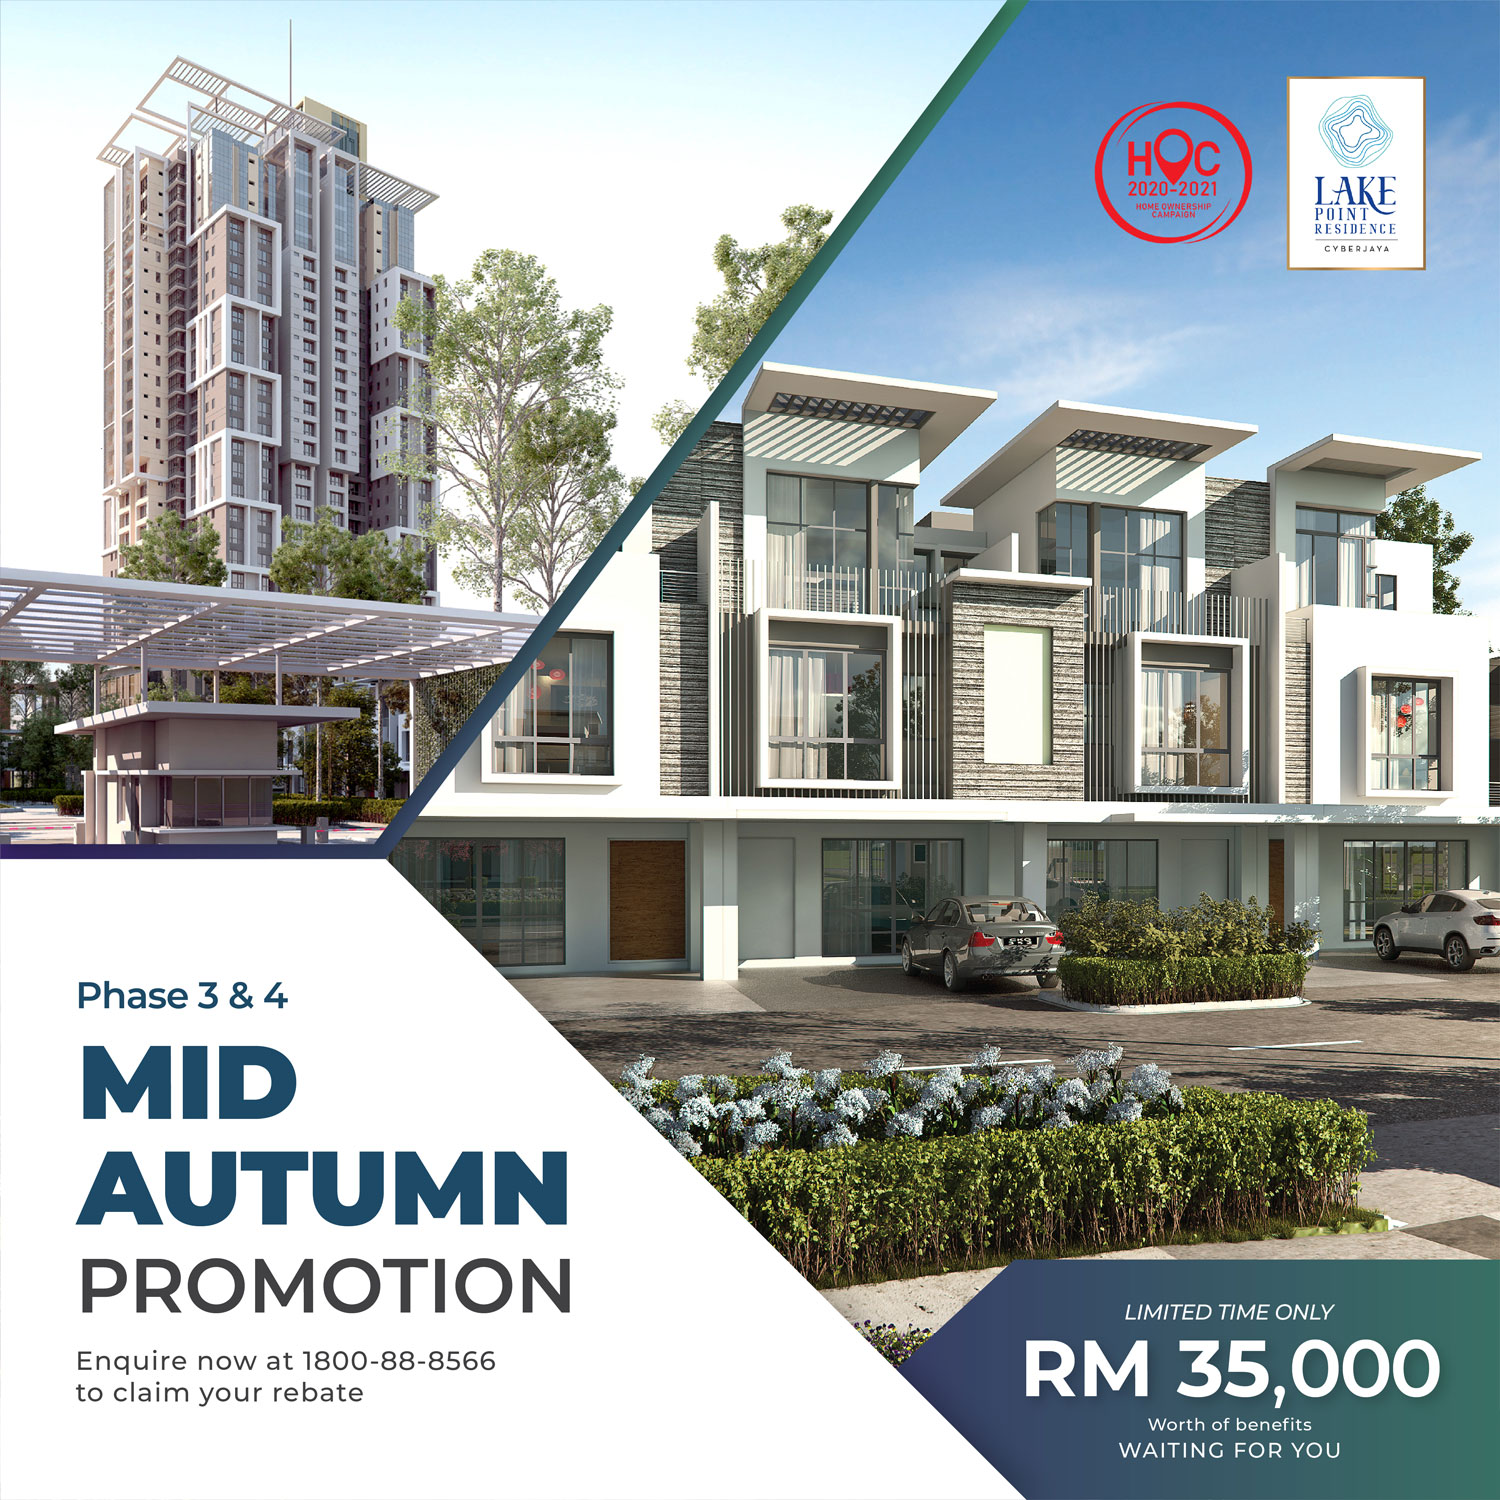 lake point residence mid autumn promo